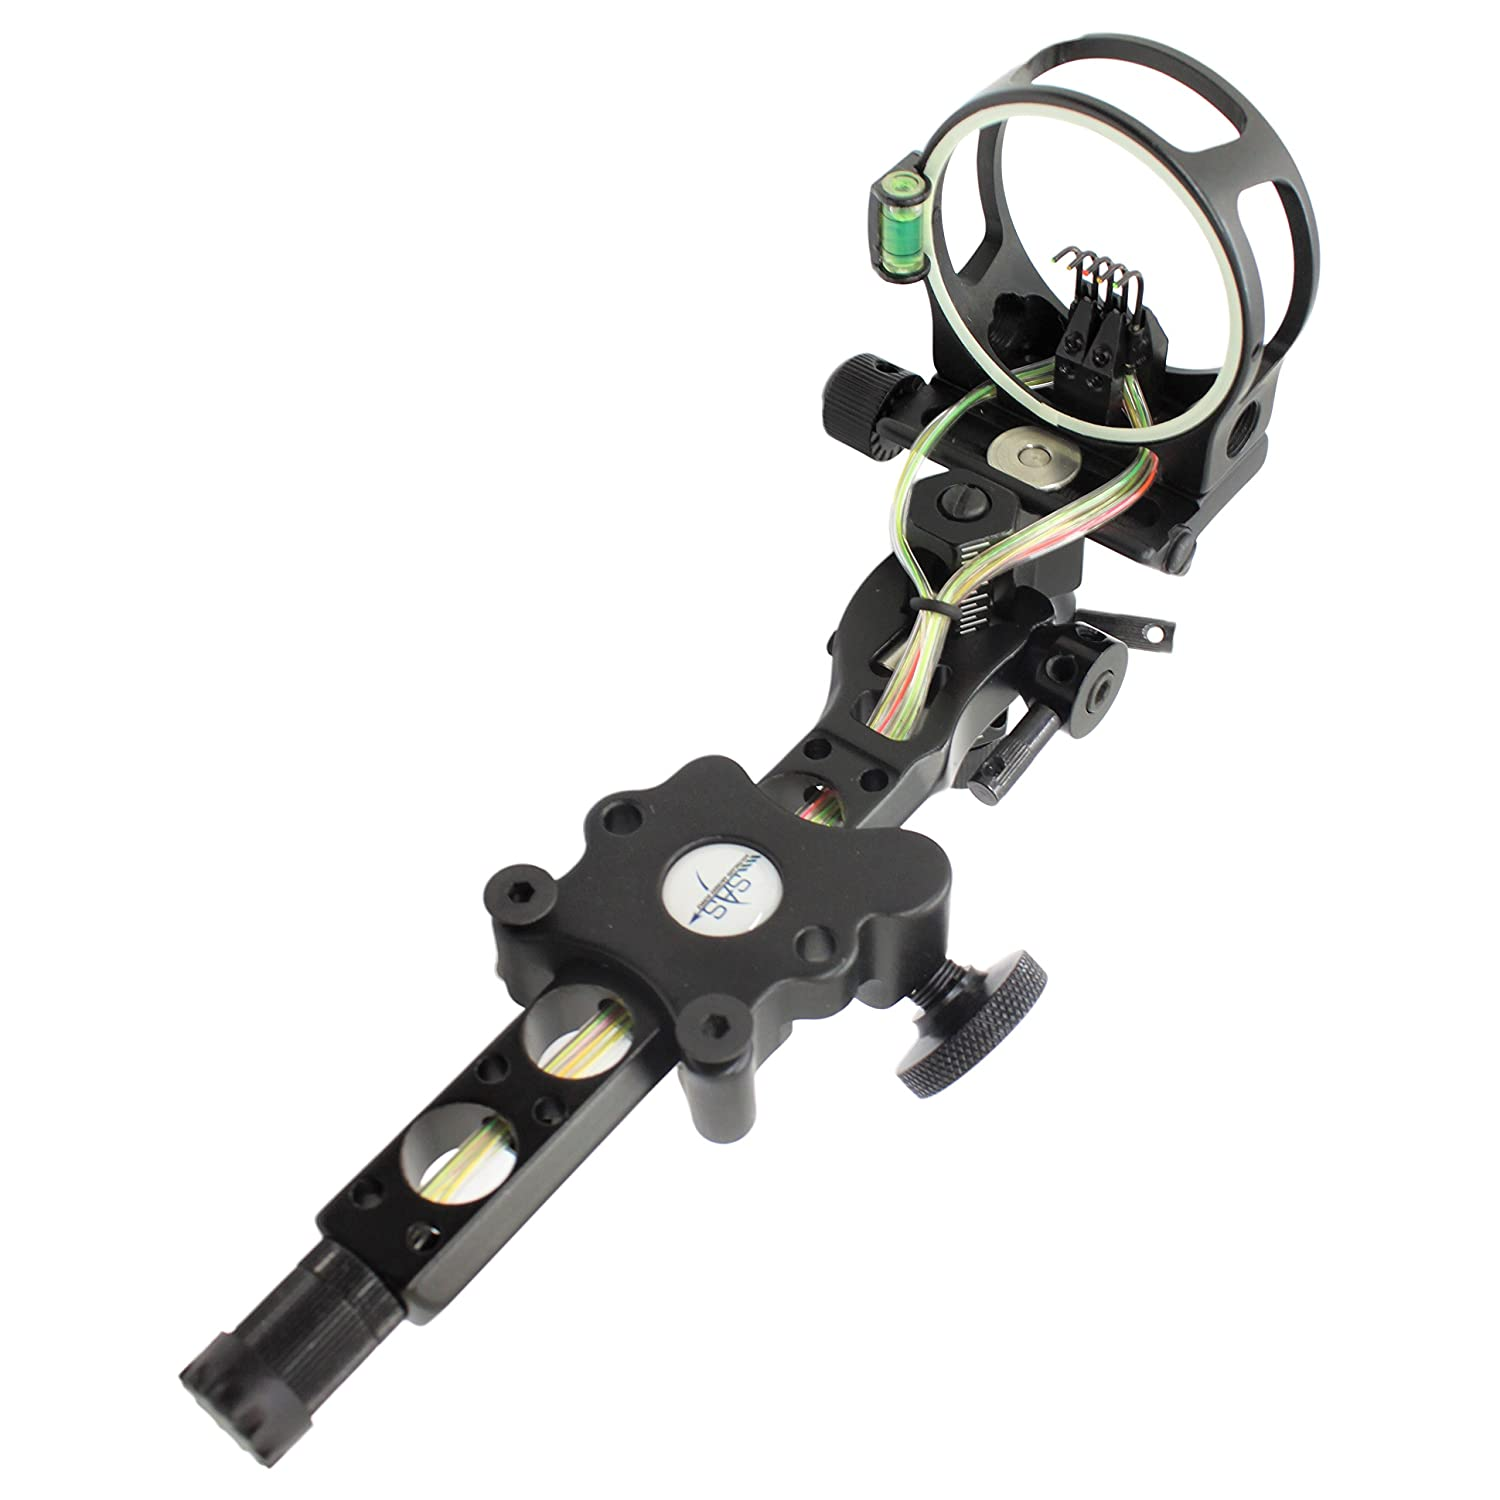 Southland Archery Supply SAS CNC Aluminum 5 Pin .019 Tool-Less Bow Sight with Micro Adjust Detachable Bracket LED Sight Light